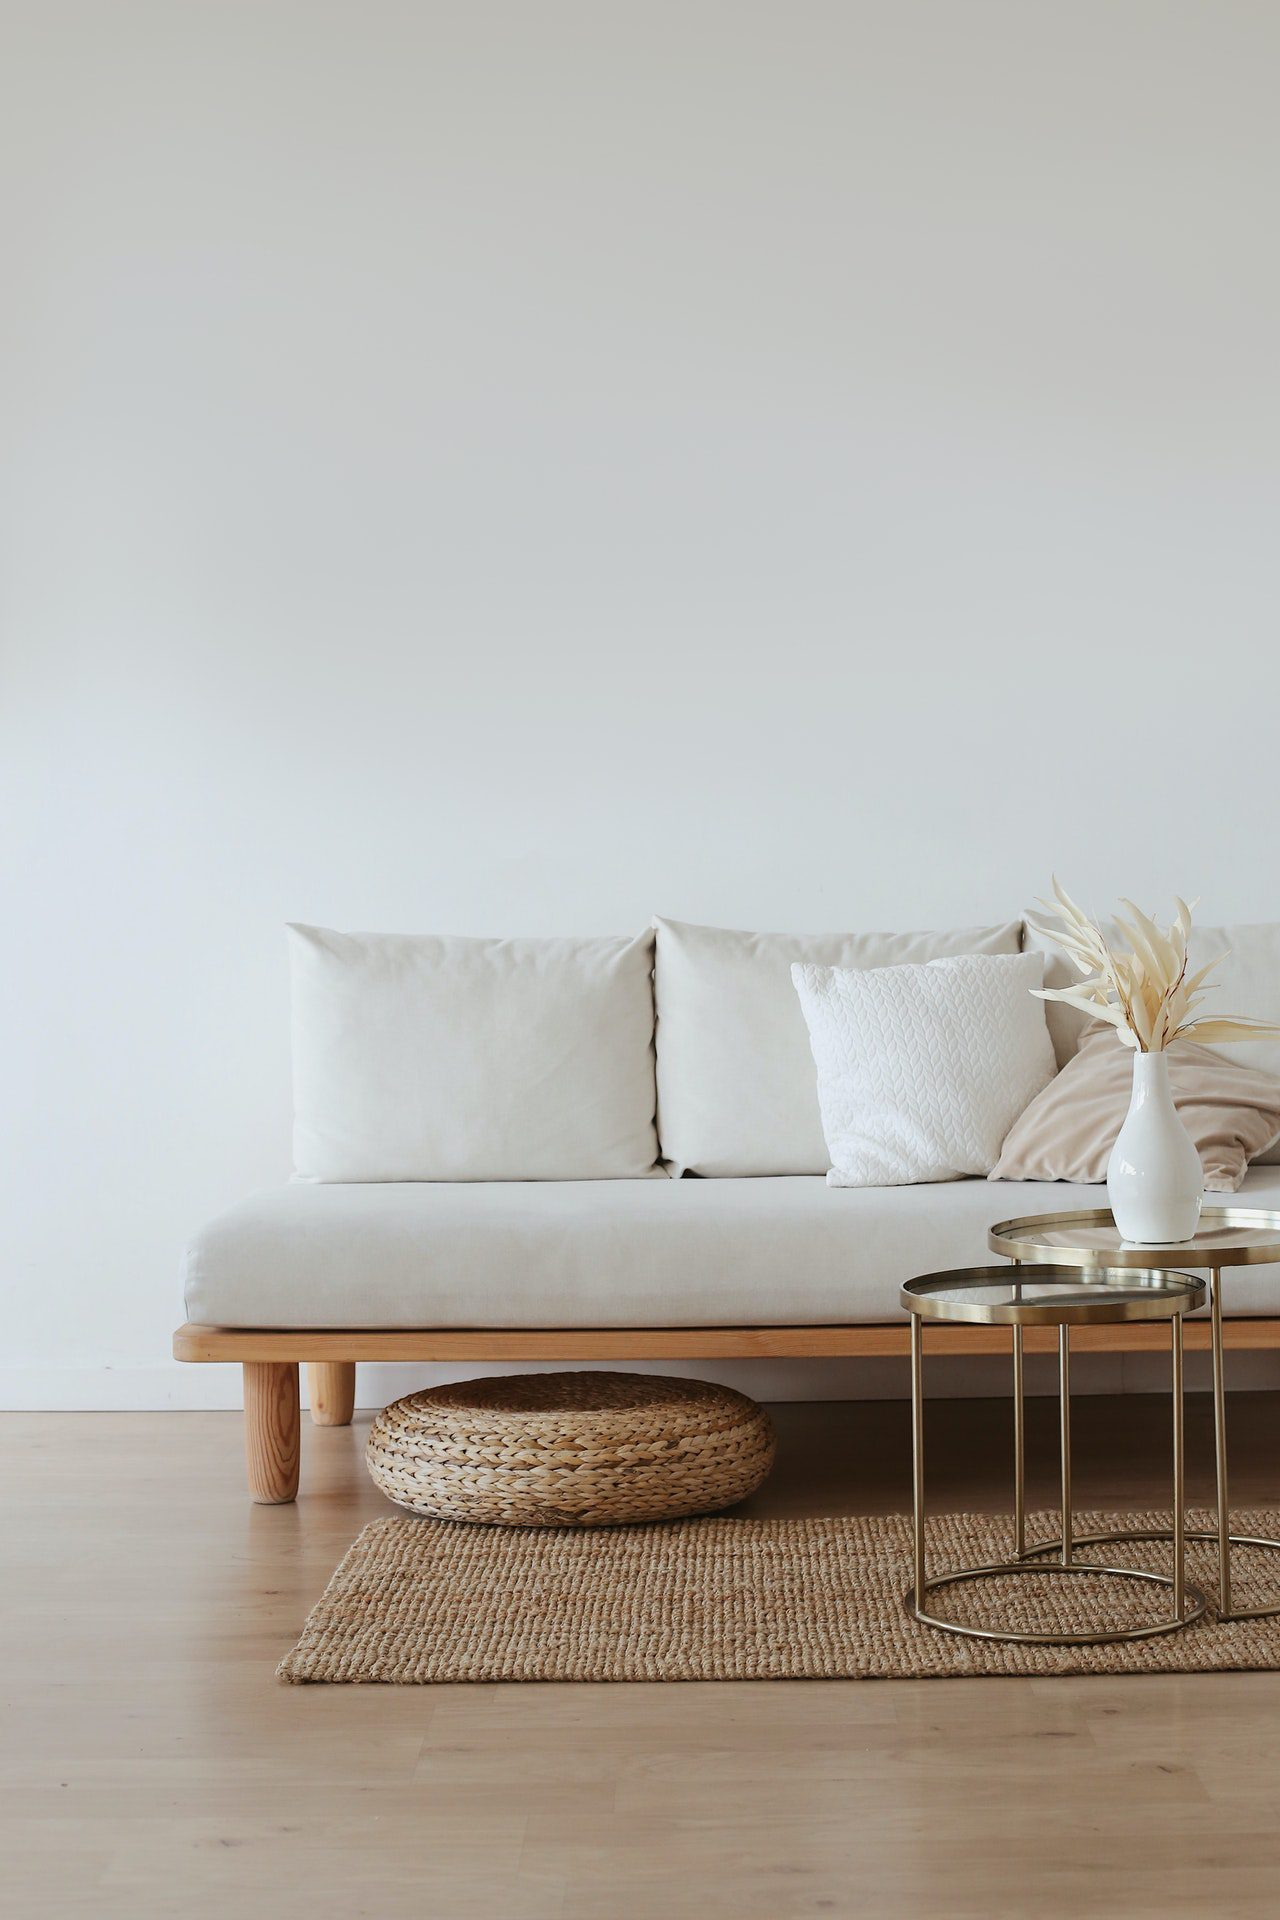 6 Ways to Decorate Your Home with Minimal Yet Attractive Décor